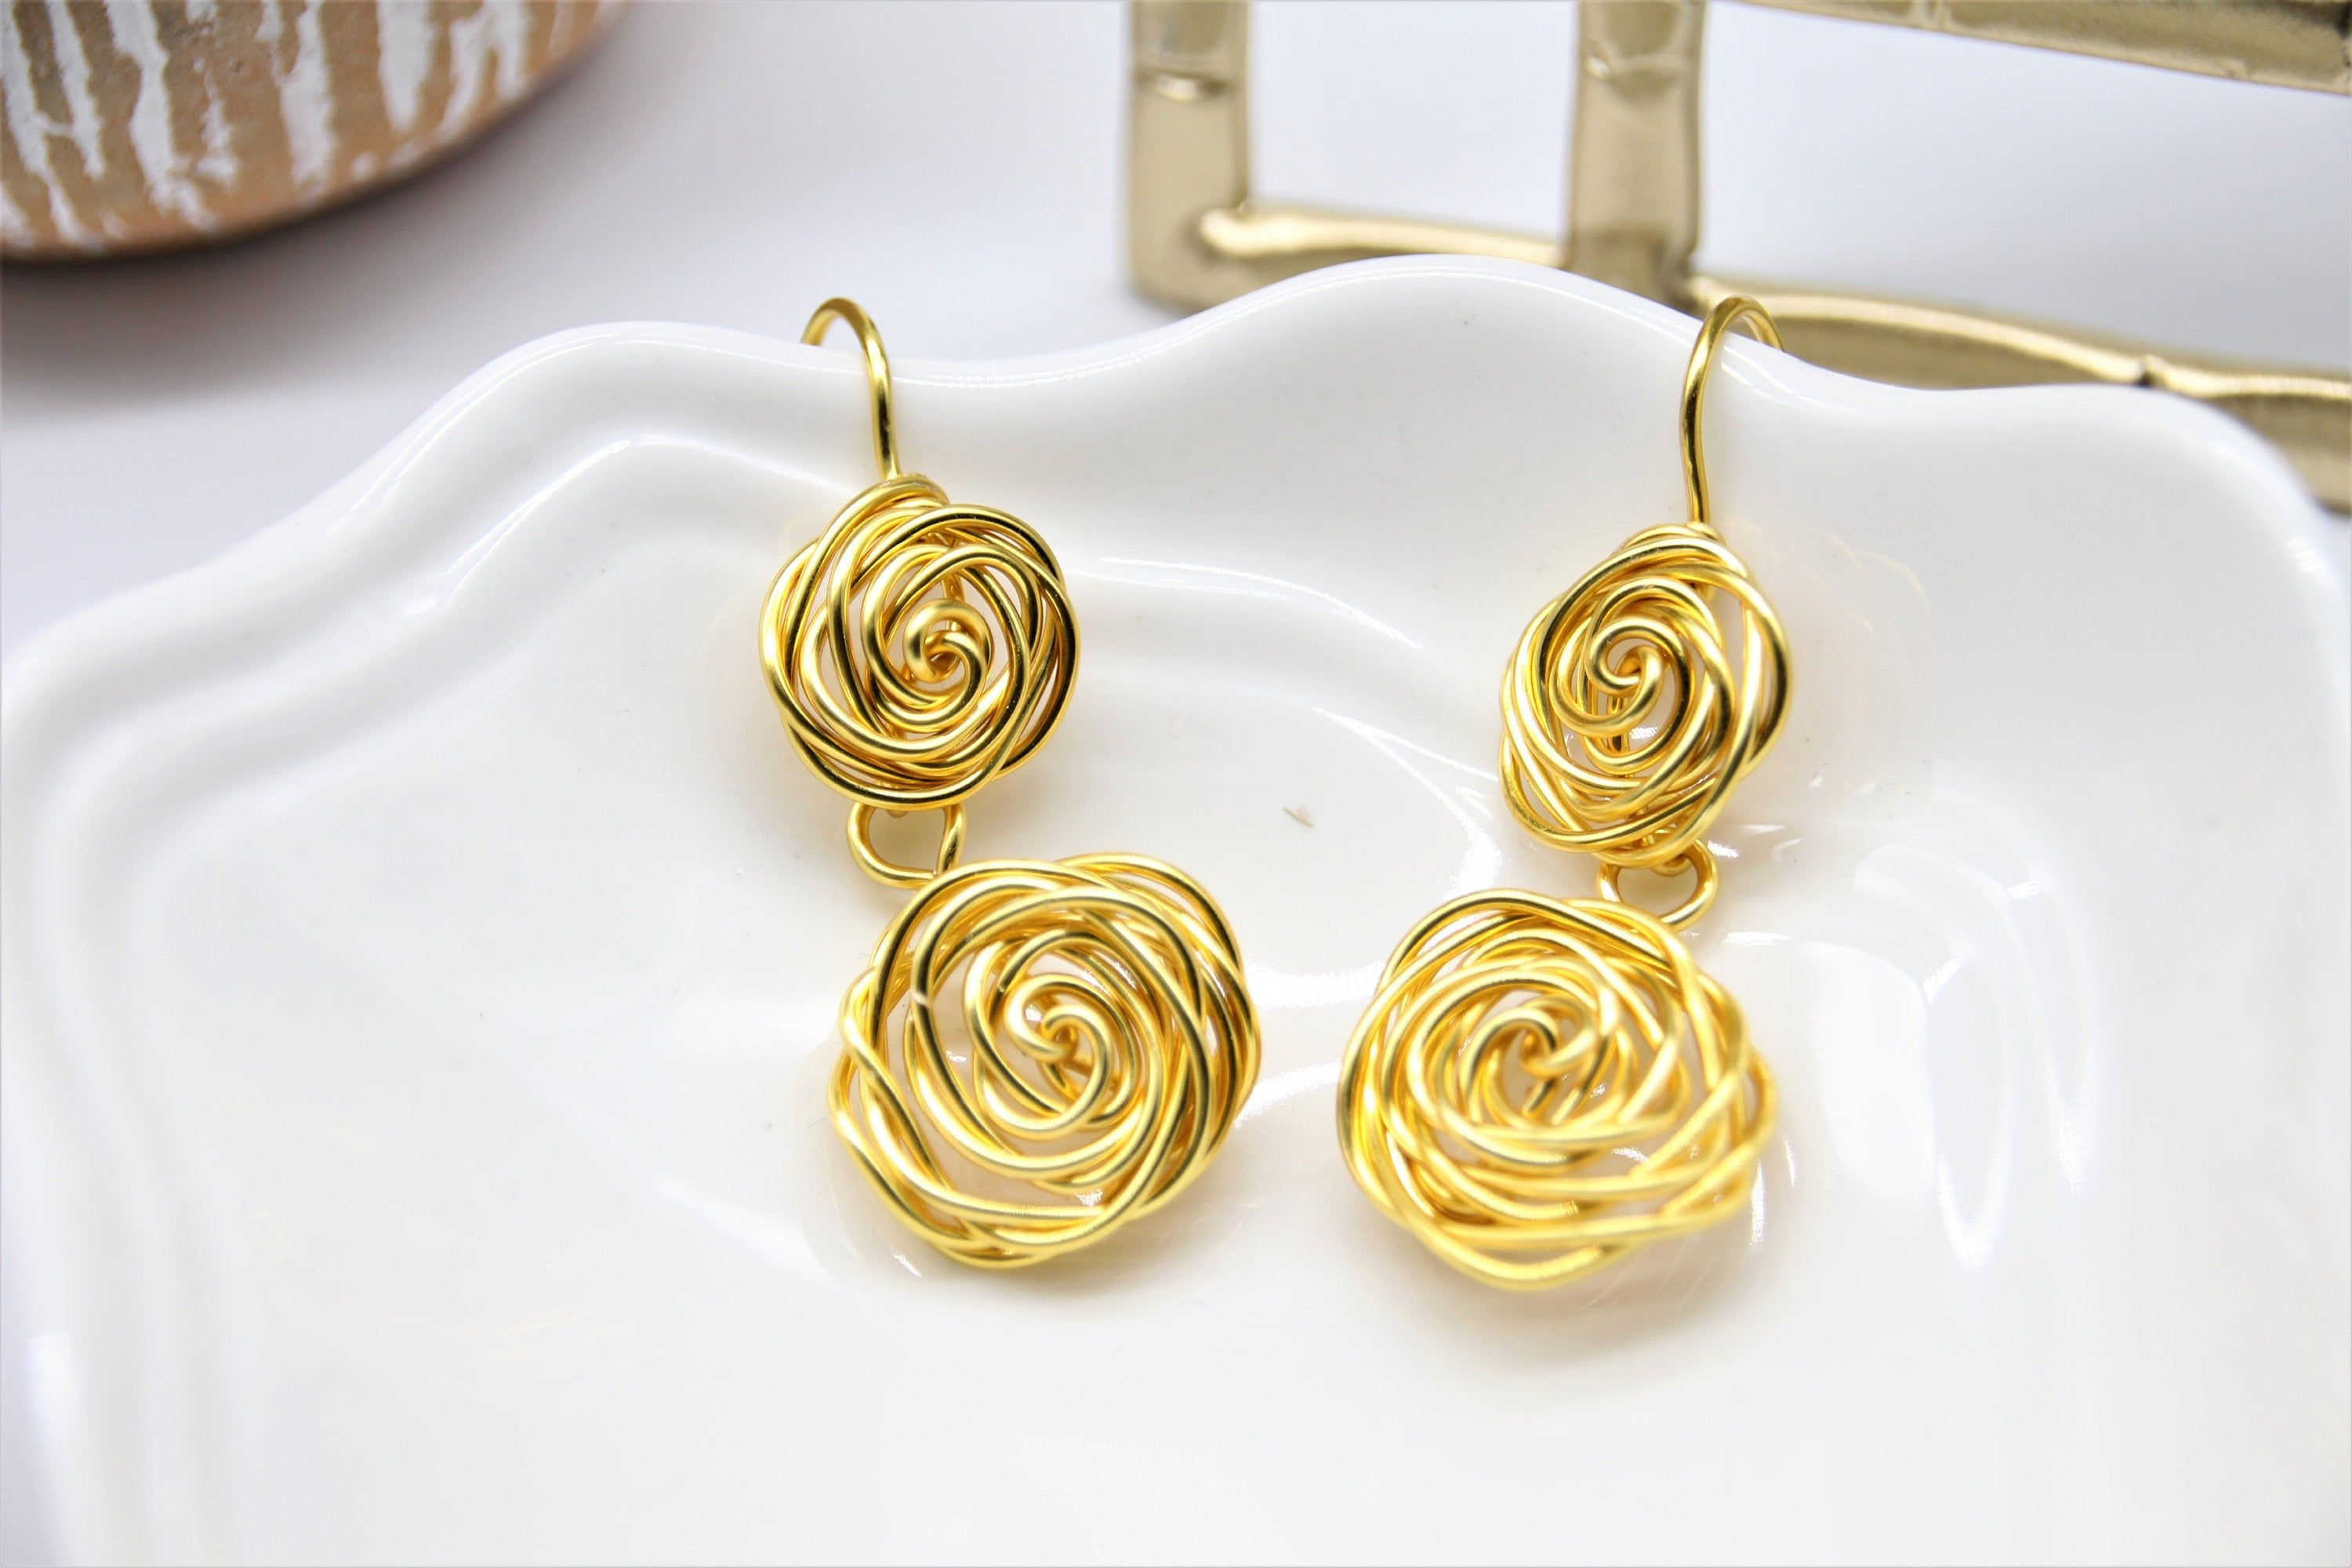 Rose Earrings Gold Rose Earrings Dangle Rose Earrings Etsy In 2020 Rose Earrings Etsy Earrings Rose Jewelry